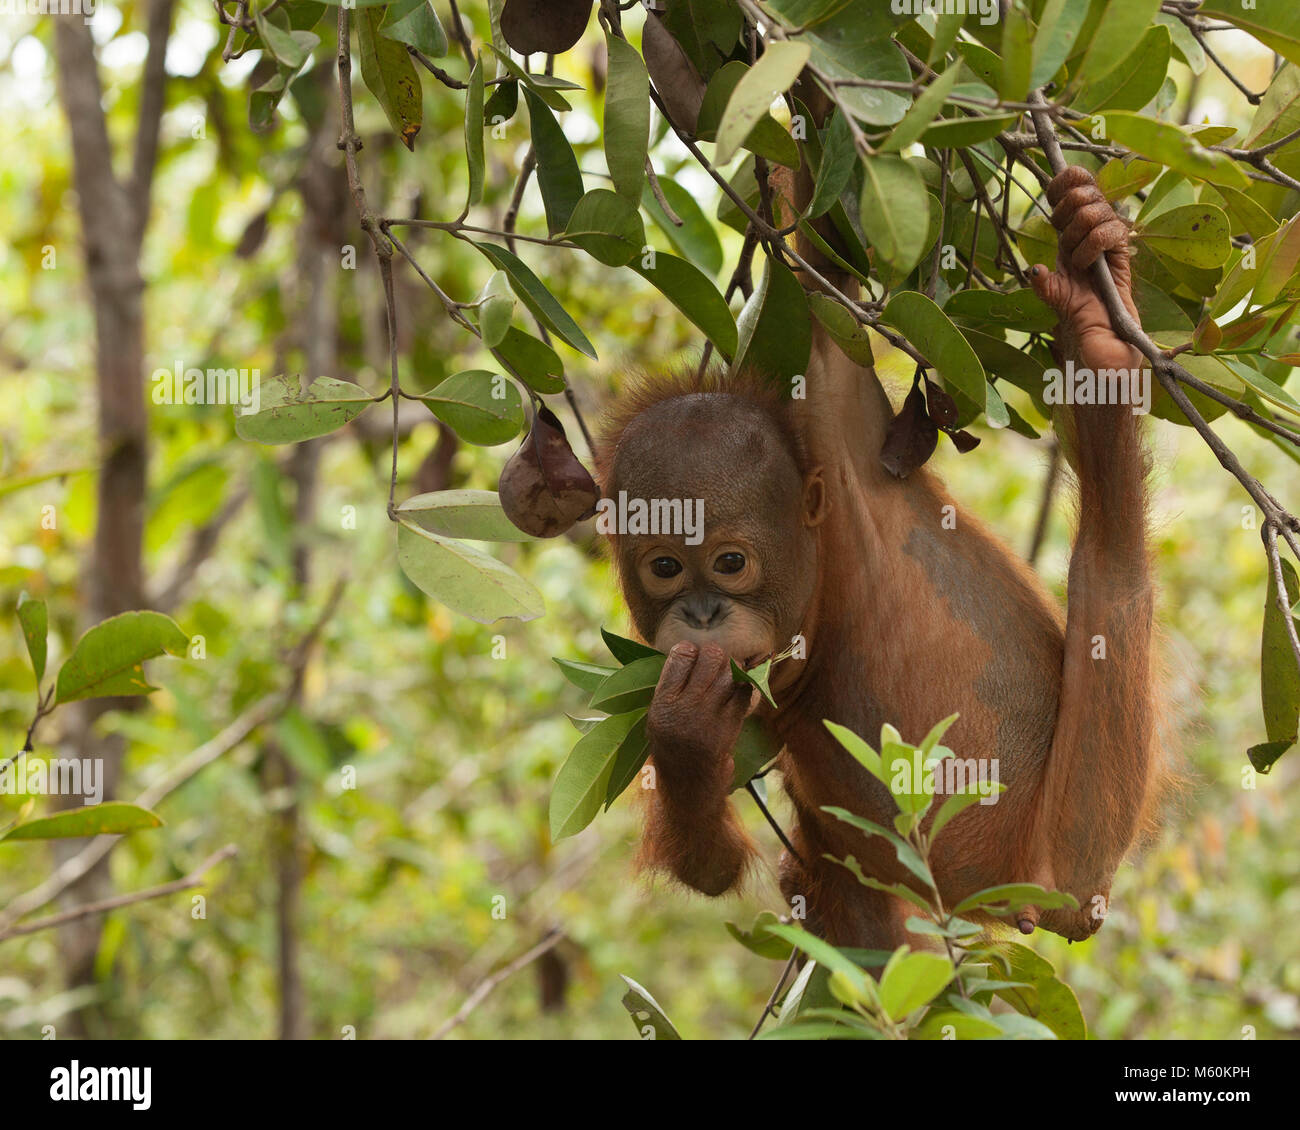 Curious baby orphan orangutan (Pongo pygmaeus) playing with leaves while hanging from tree in forest training session - Stock Image